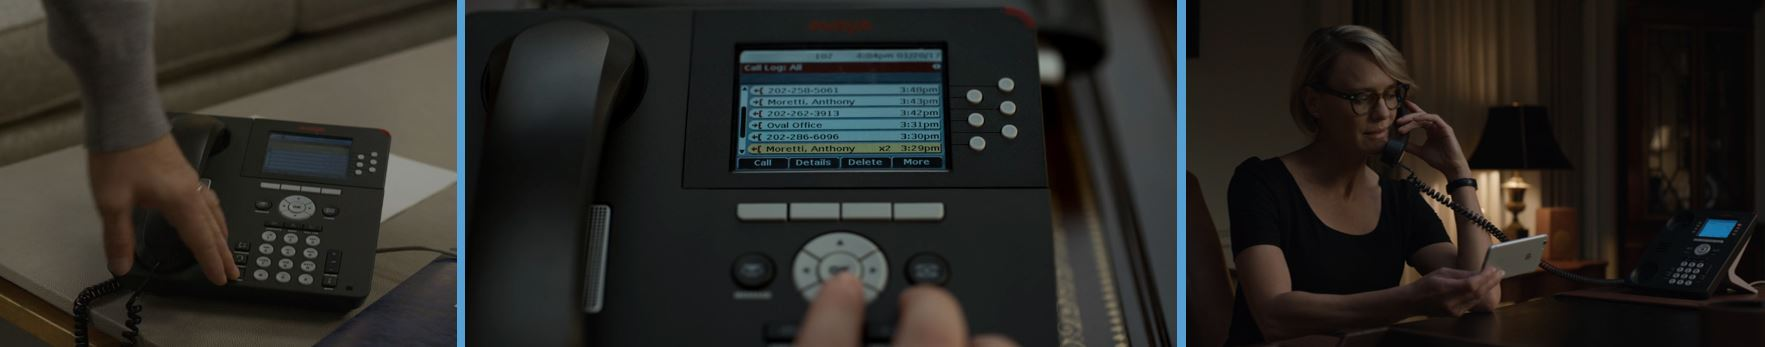 Avaya telephone house of cards season 5 product placement branding